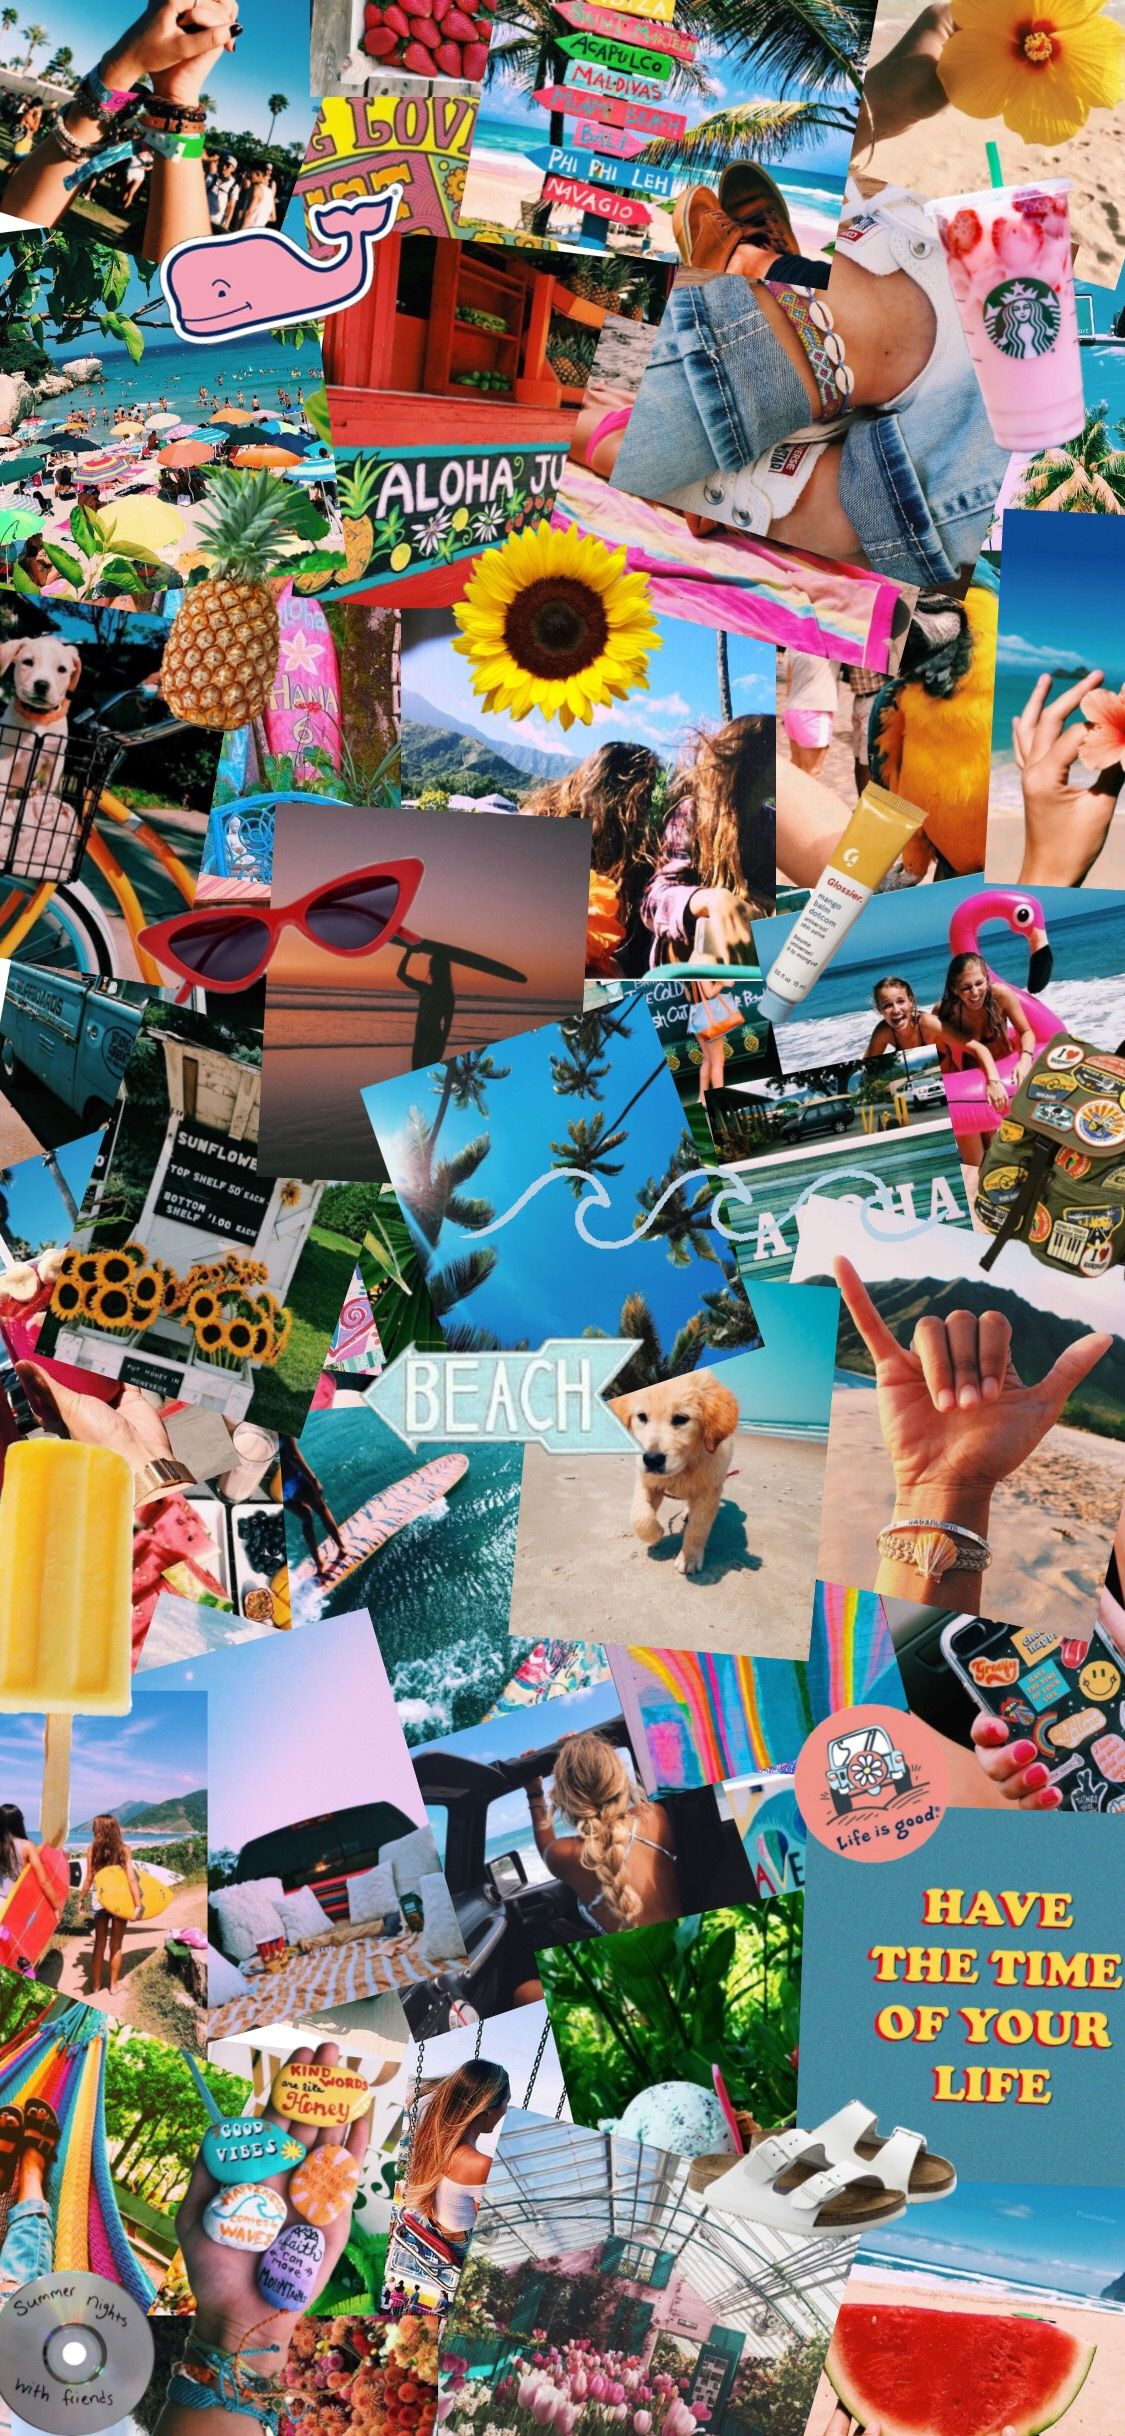 Free Download Summer Aesthetic Bright Colors Indie Theme Summer Wallpaper In 1125x2436 For Your Desktop Mobile Tablet Explore 52 Collage For Summer Wallpapers Collage For Summer Wallpapers Collage Backgrounds